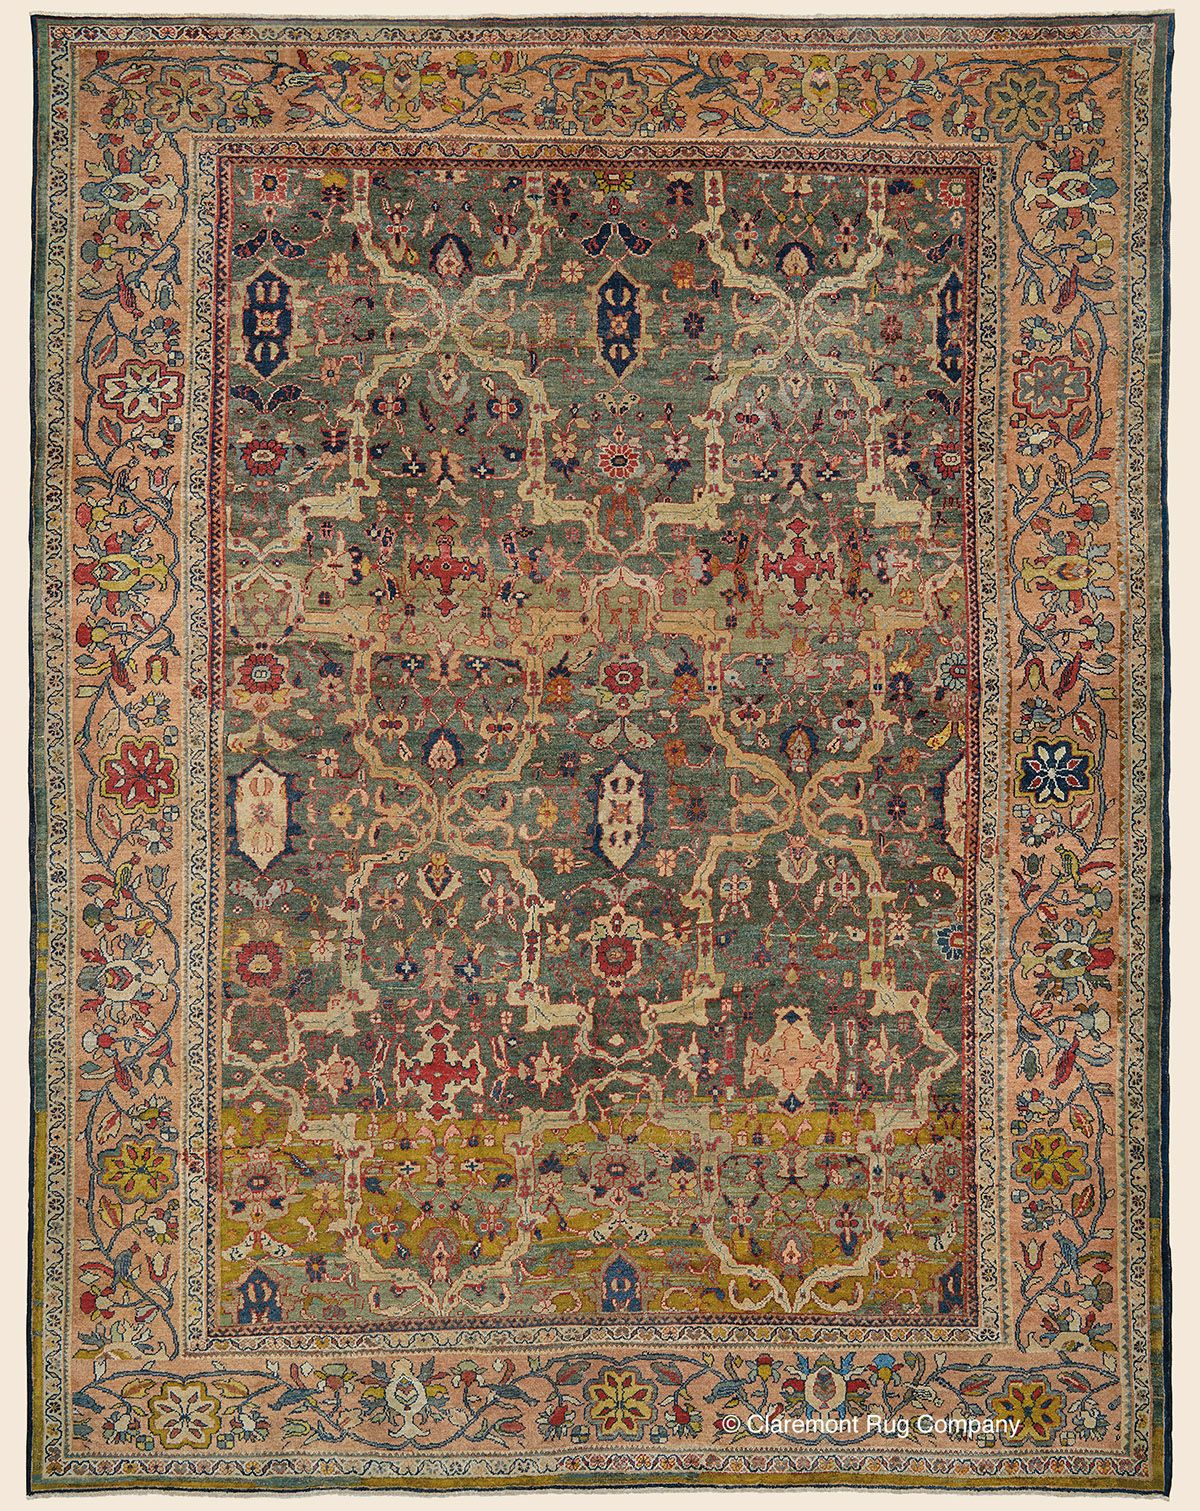 Sorry This Rug Is No Longer Available Claremont Rug Company Rugs Persian Rug Designs Claremont Rug Company